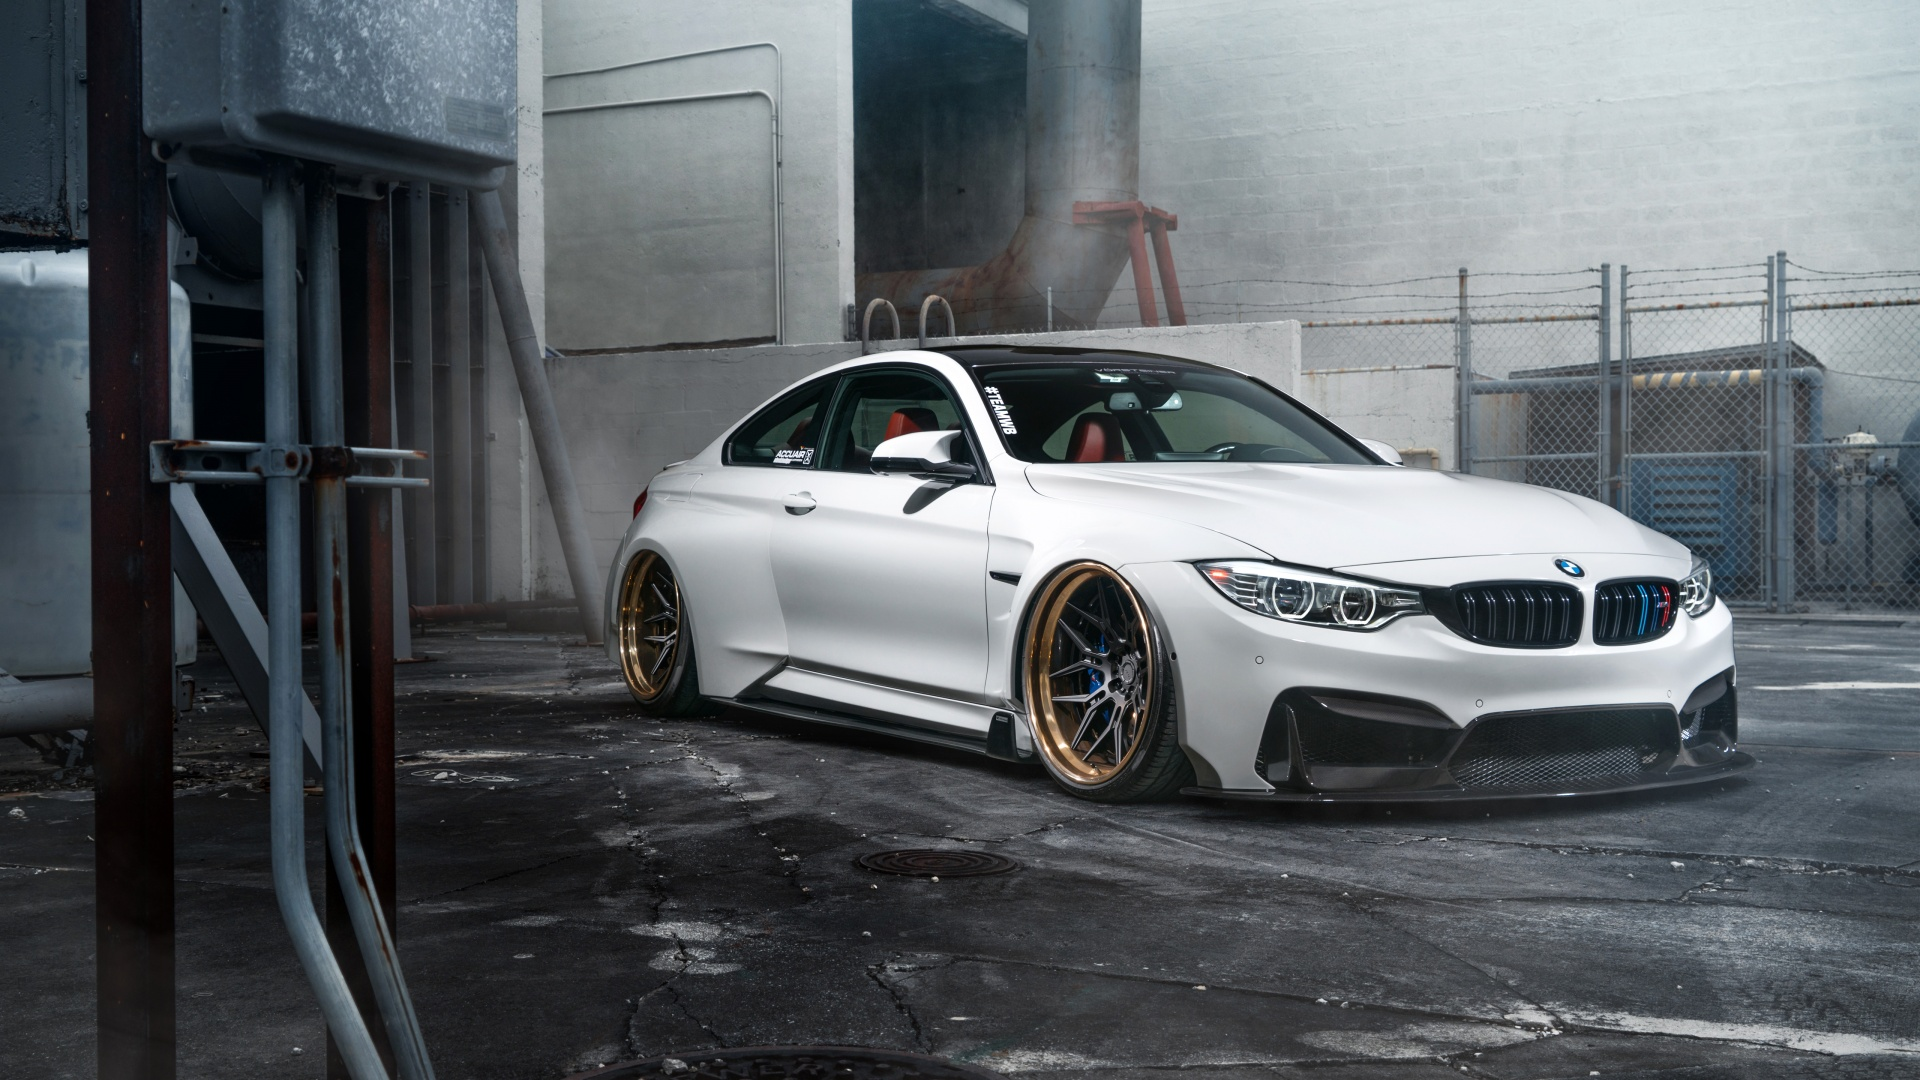 1920x1080 - BMW M4 Wallpapers 13